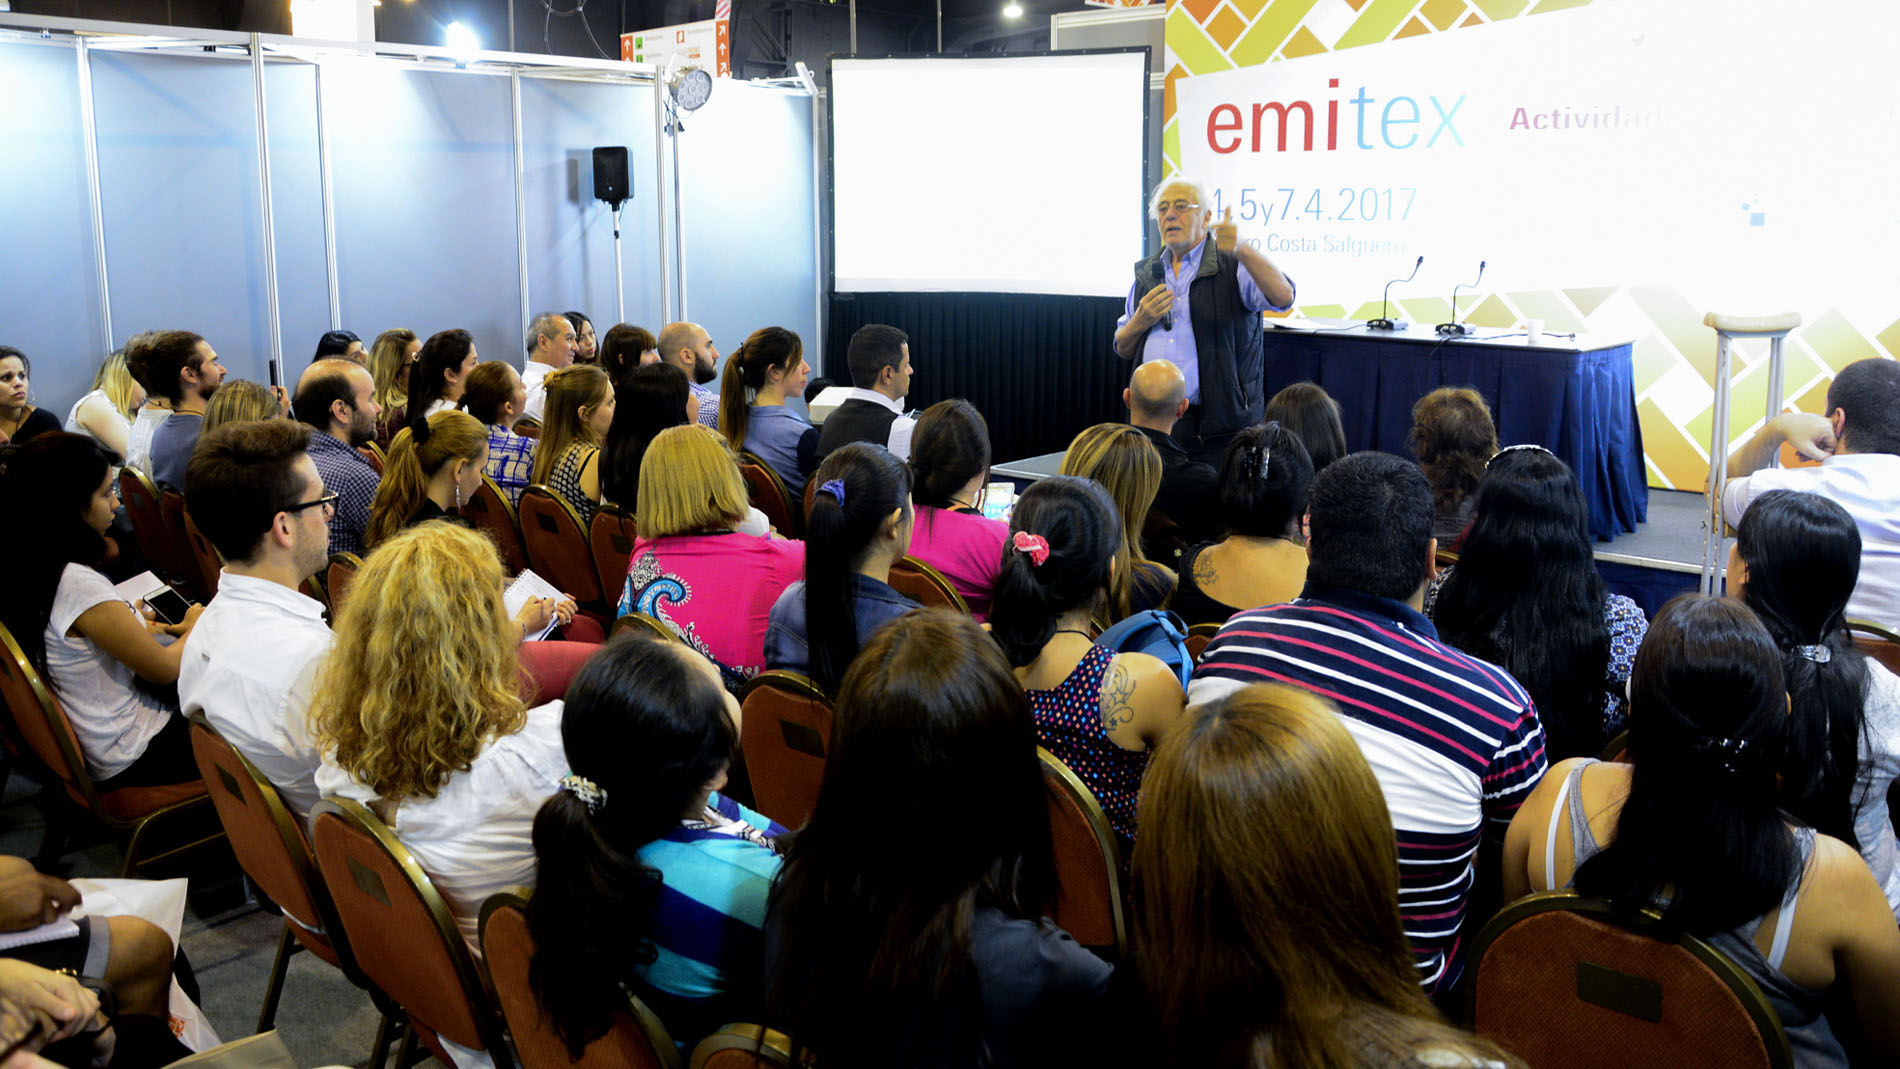 Emitex: Events